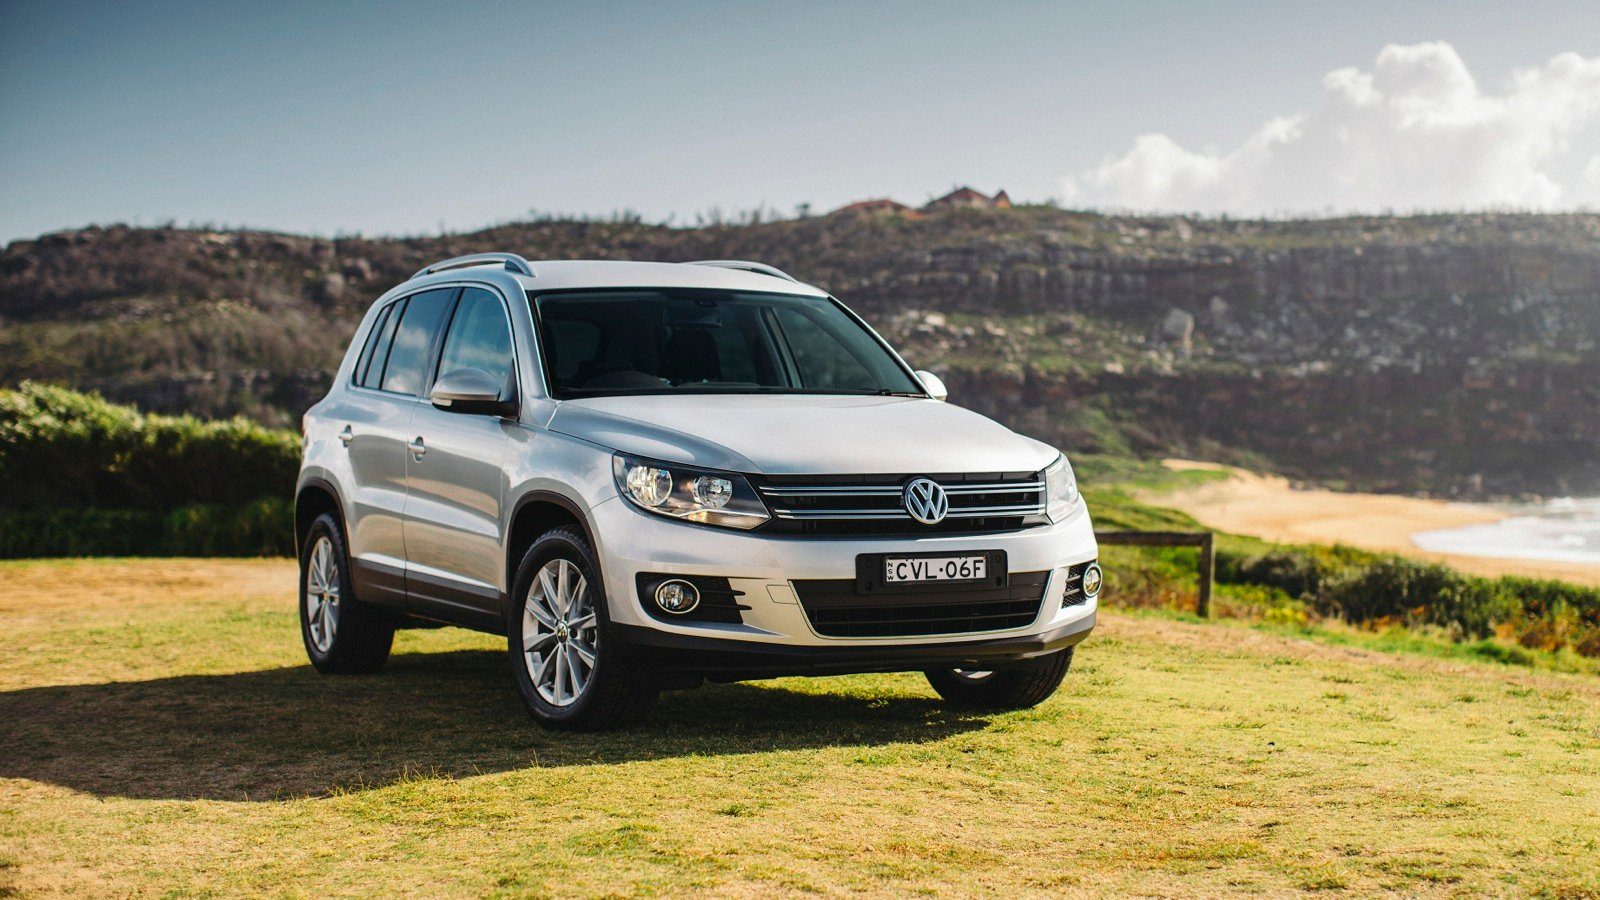 2015 volkswagen tiguan review caradvice. Black Bedroom Furniture Sets. Home Design Ideas